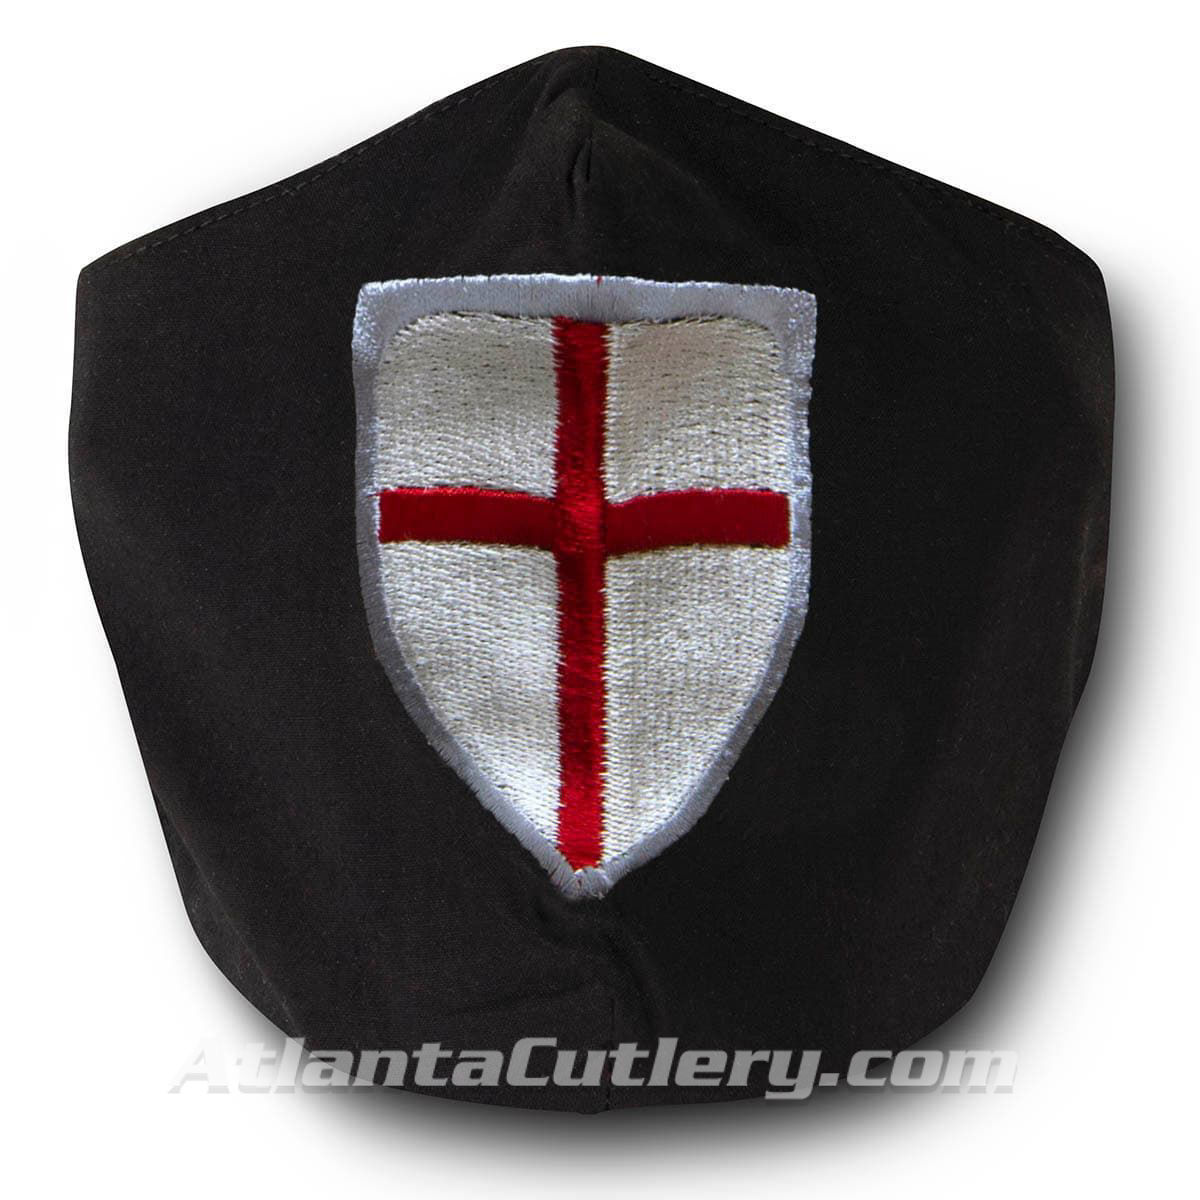 Black Cotton Face Mask with silk embroidered Crusader Shield, adjustable straps and pocket for disposable filter